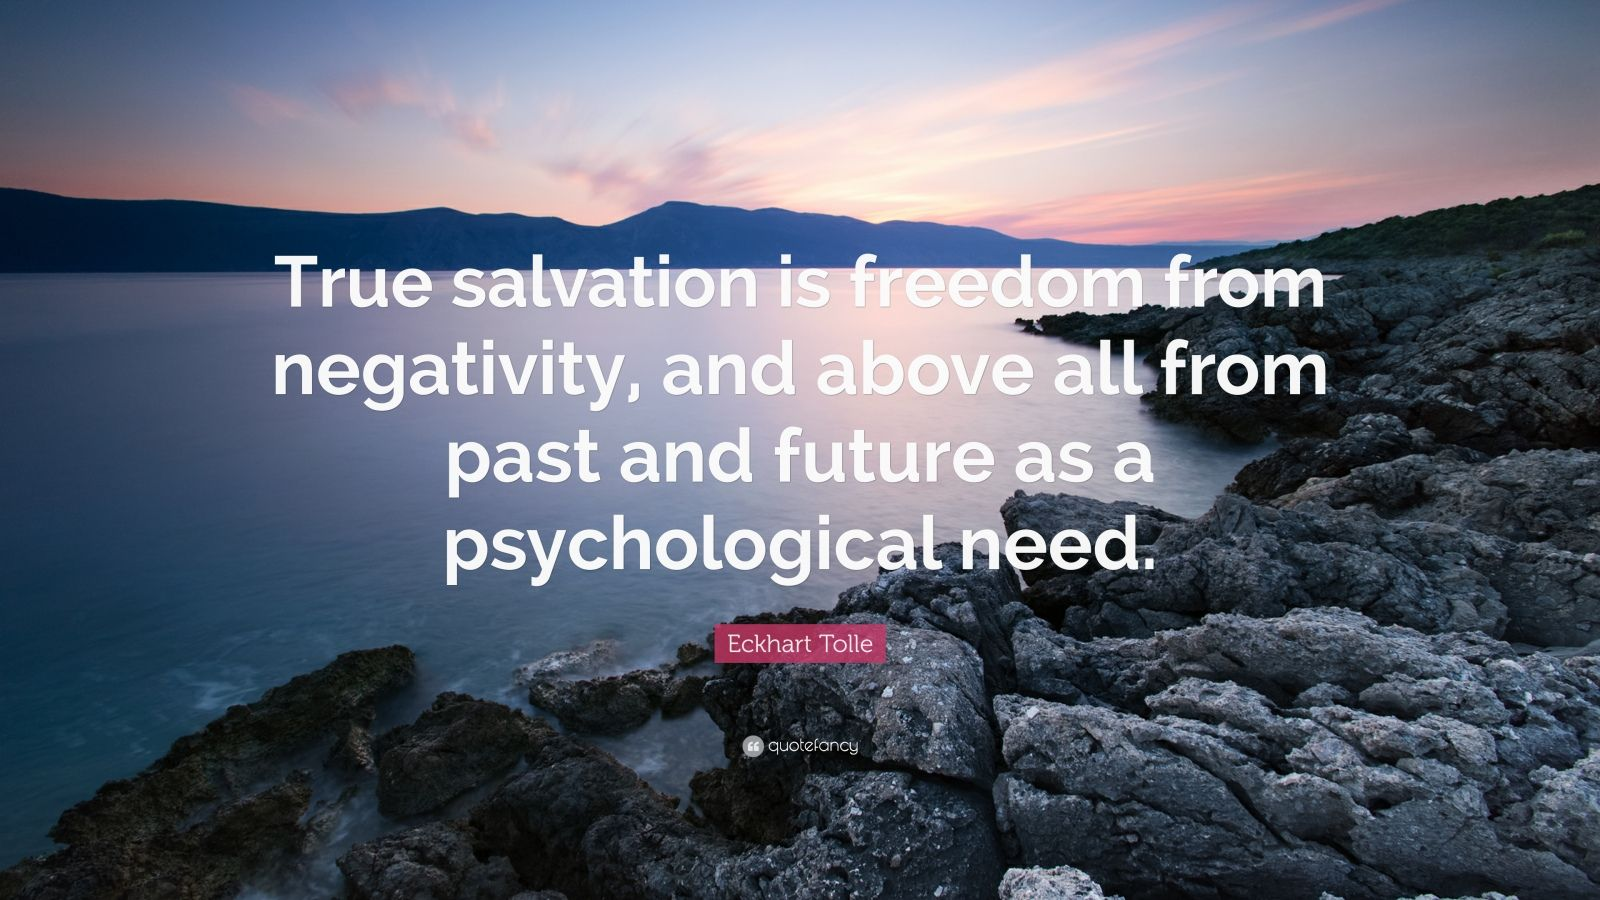 """Eckhart Tolle Quote: """"True salvation is freedom from negativity, and above all from past and future as a psychological need."""""""